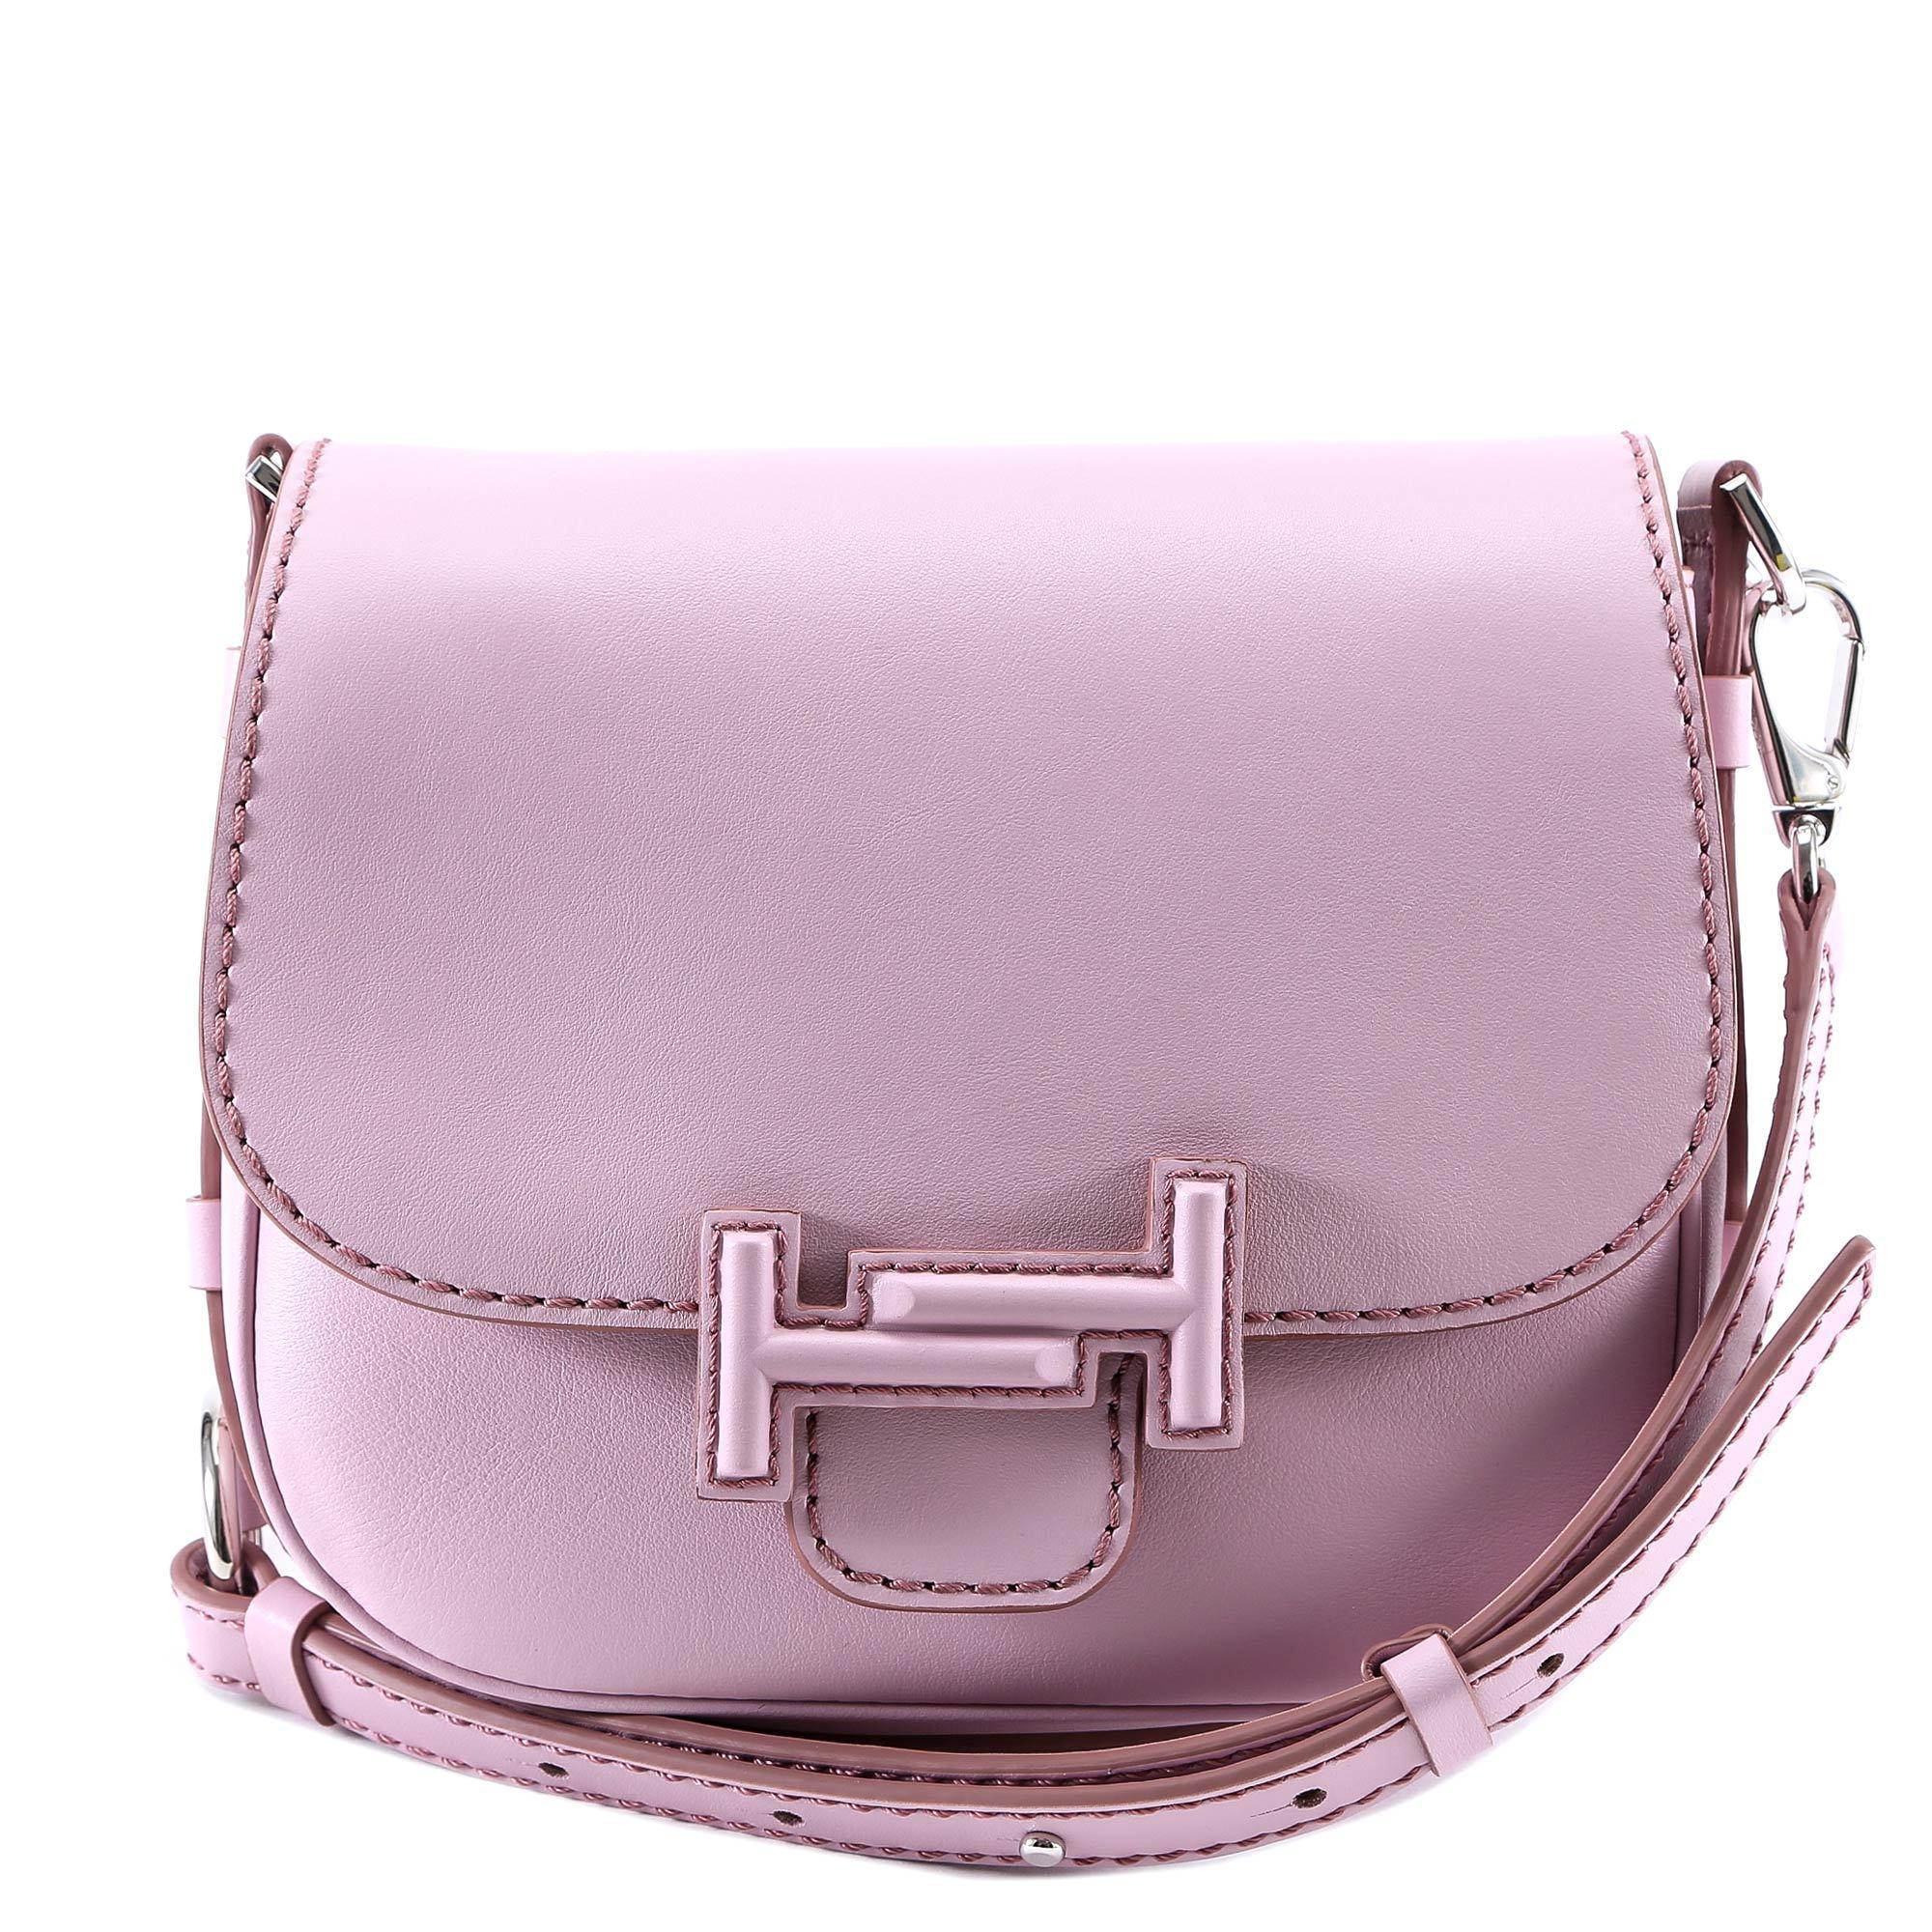 dbcdf89d32 Tod's Double T Saddle Bag in Pink - Lyst